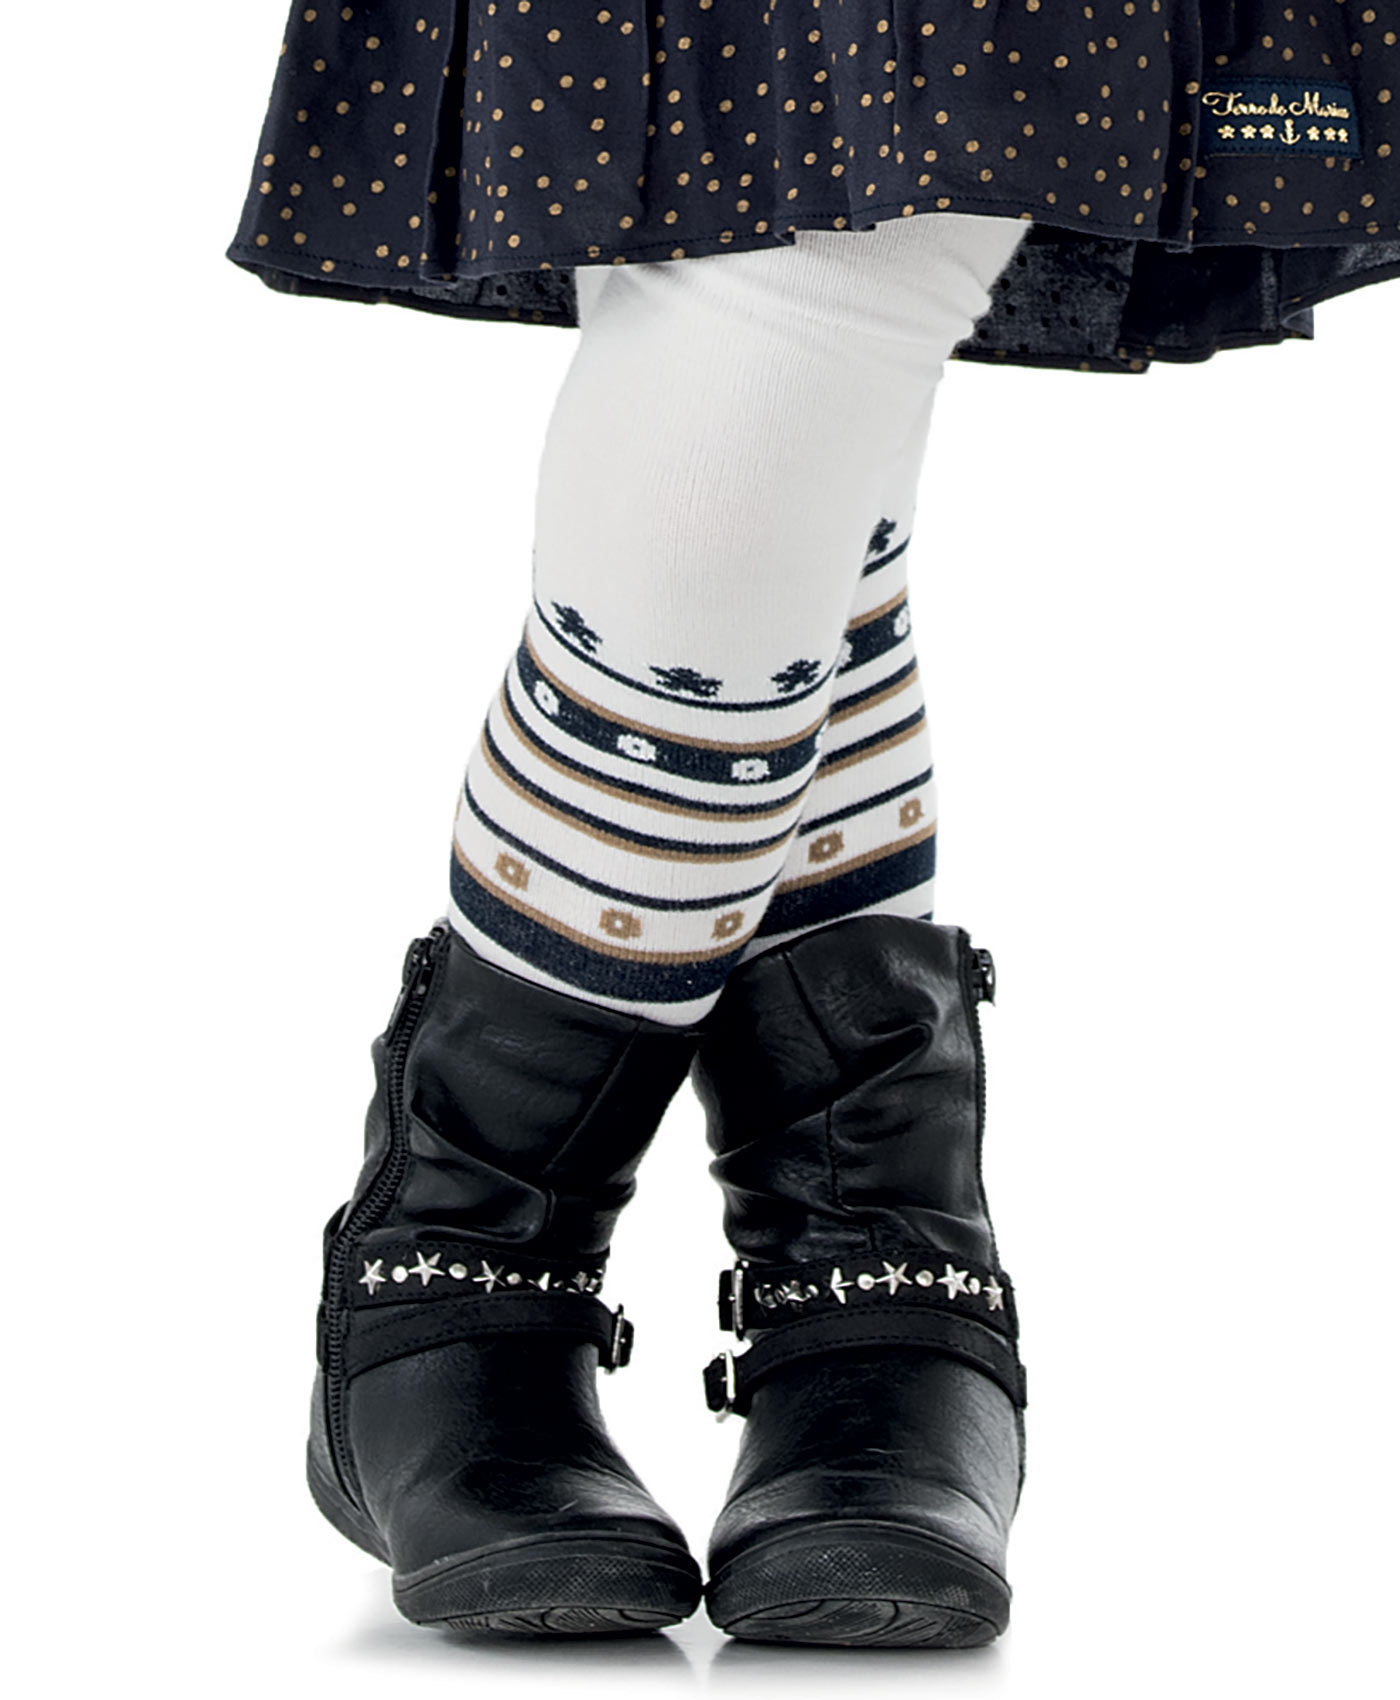 Collants enfant fille blanc craie - Mode marine Enfant fille